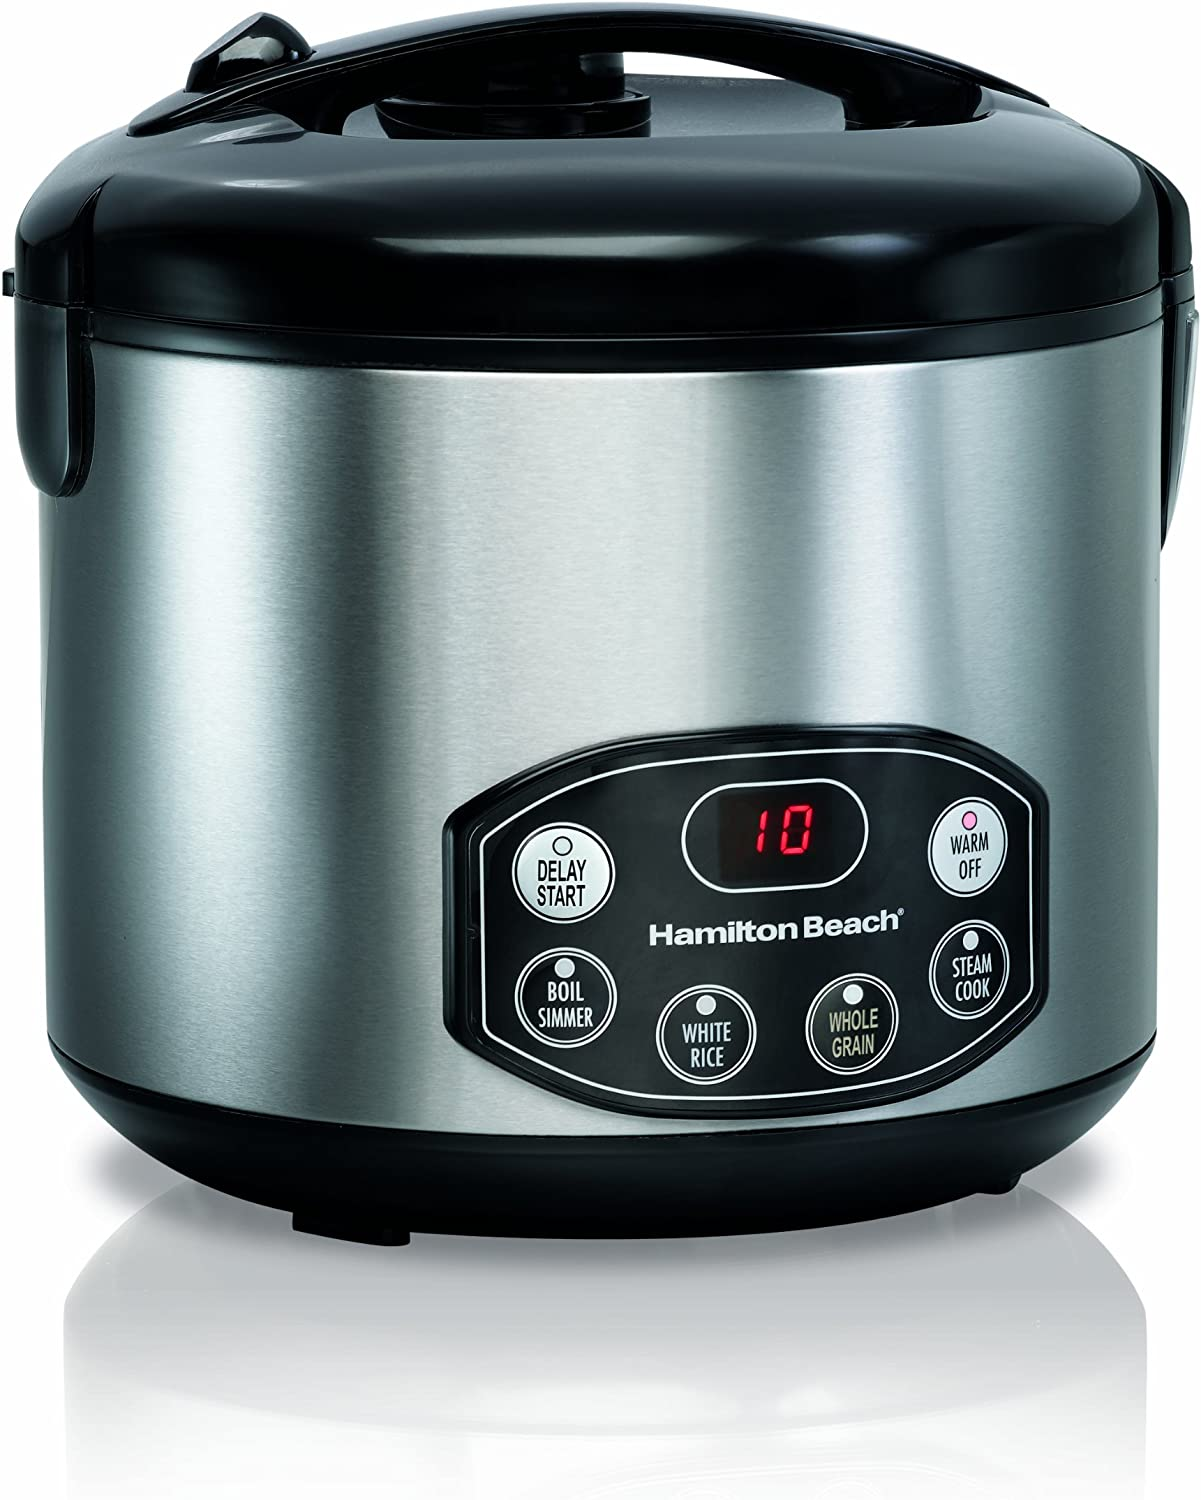 Hamilton Beach Digital Simplicity 10-Cups uncooked resulting in 20-Cups (Cooked) Rice Cooker and Steamer, Silver (37536)